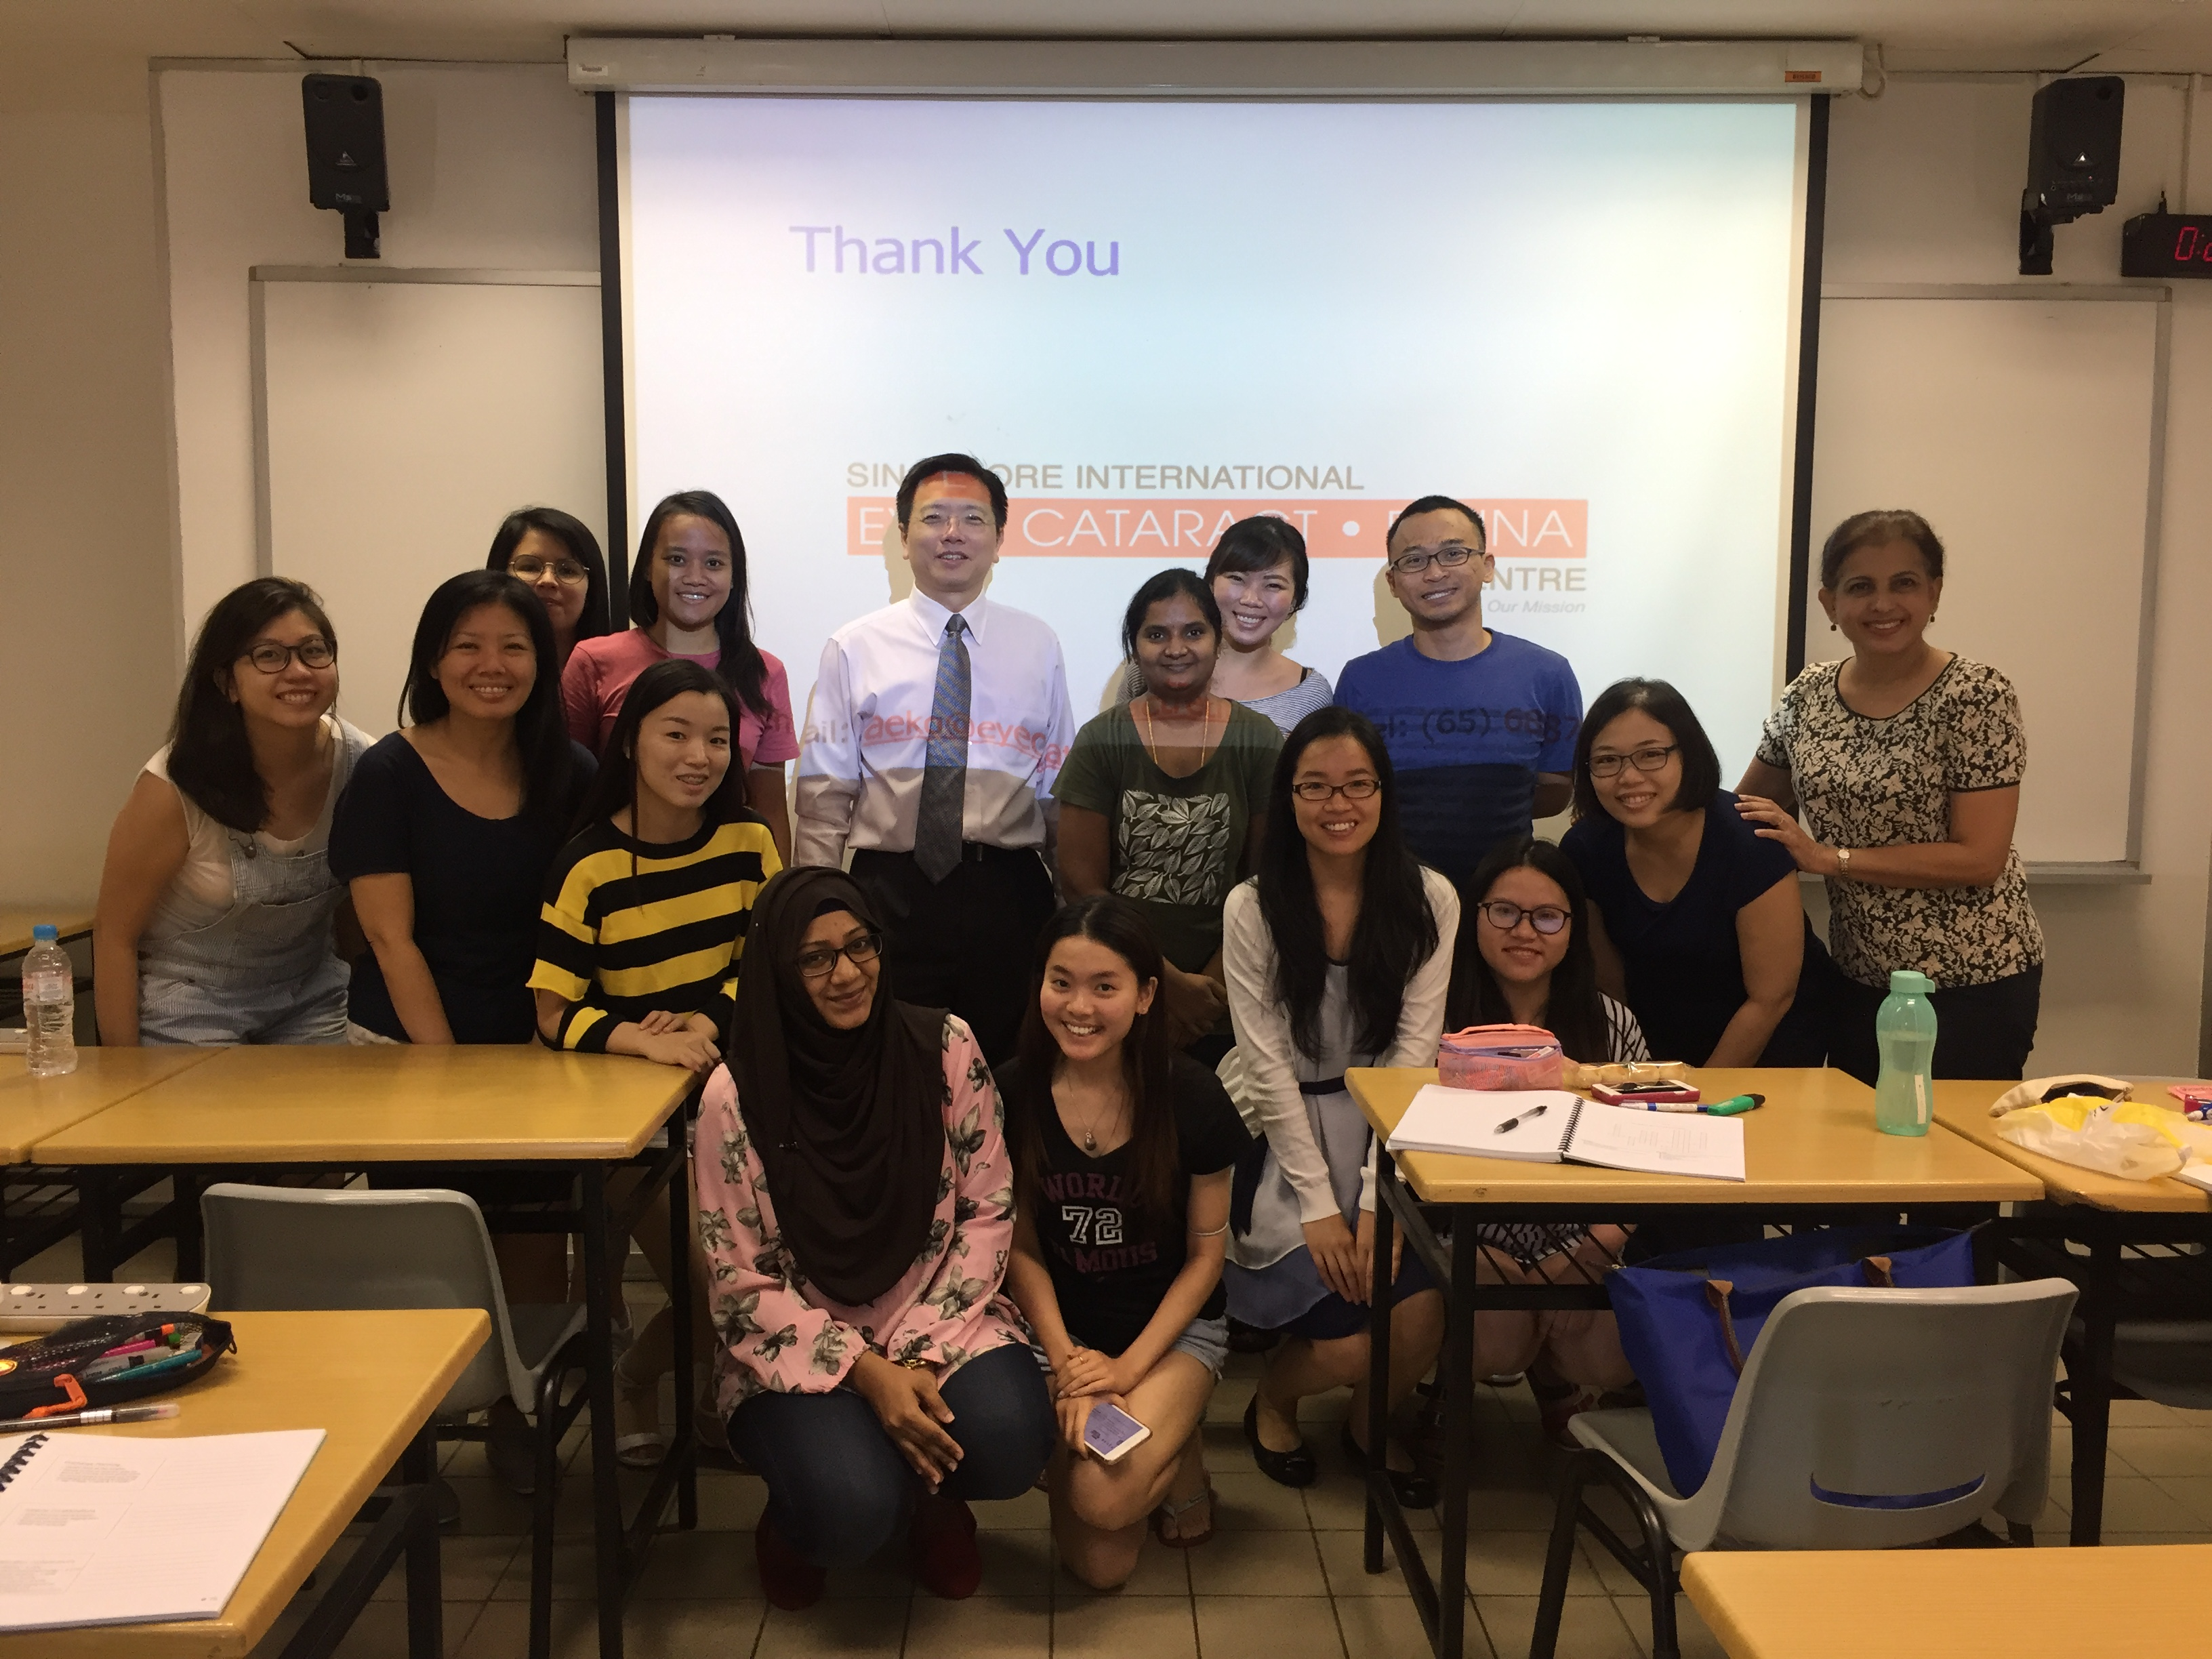 Dr Au Eong Kah Guan and Ms Sukhdev Kaur with students enrolled in the Advanced Diploma in Perioperative Nursing course in the School of Health Sciences at Ngee Ann Polytechnic on 10 June 2017.